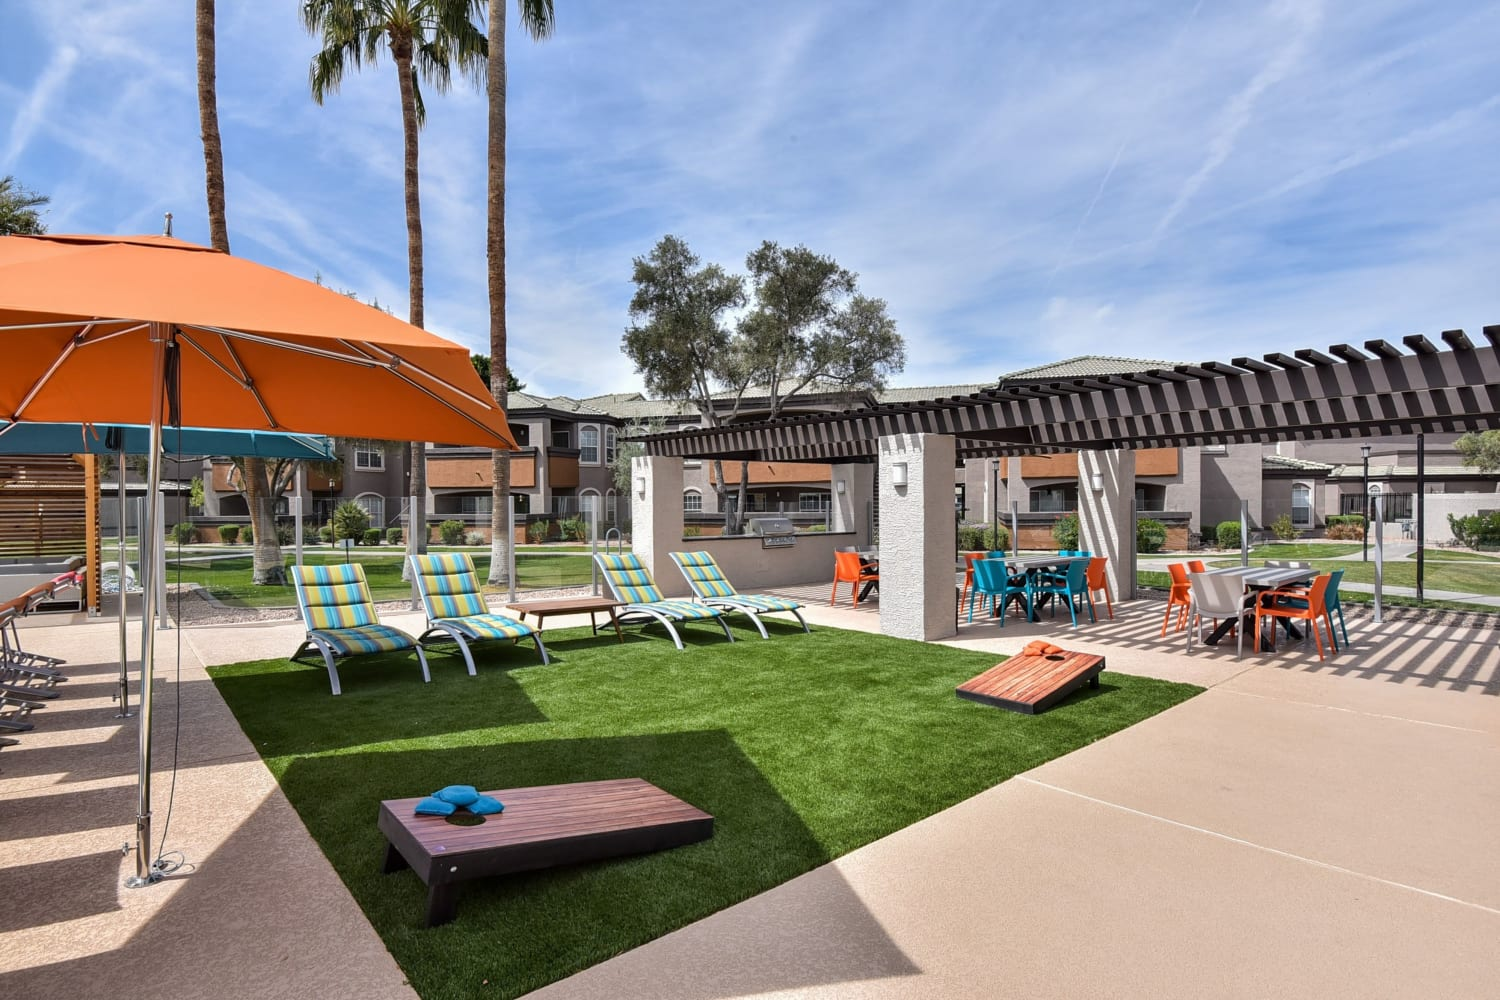 Outdoor patio and lawn games at Luxe @ Ocotillo in Chandler, Arizona